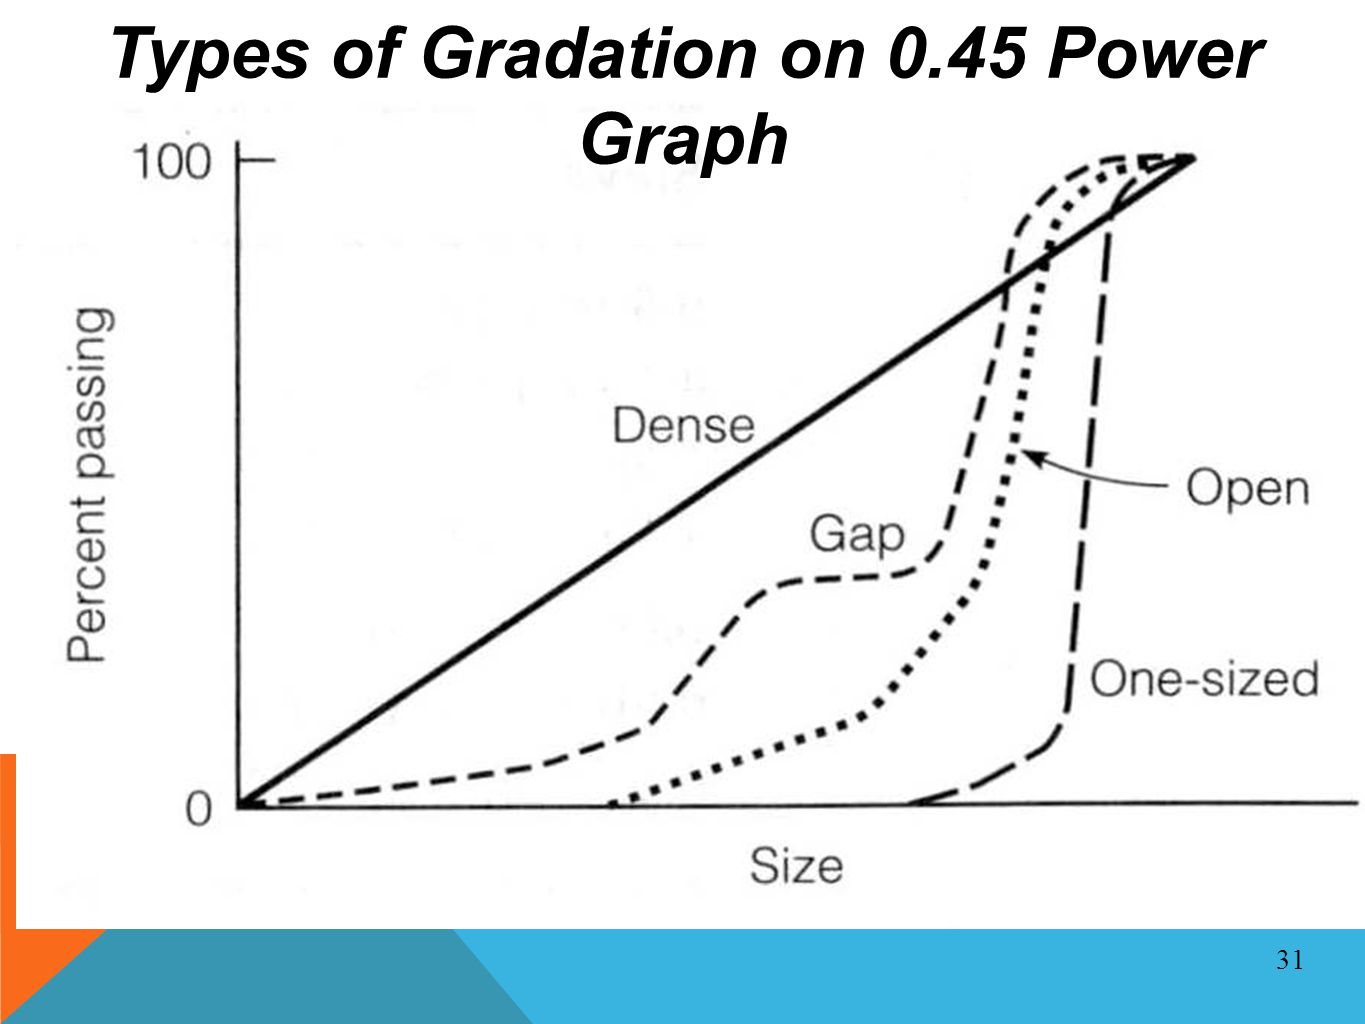 Types of Gradation on 0.45 Power Graph